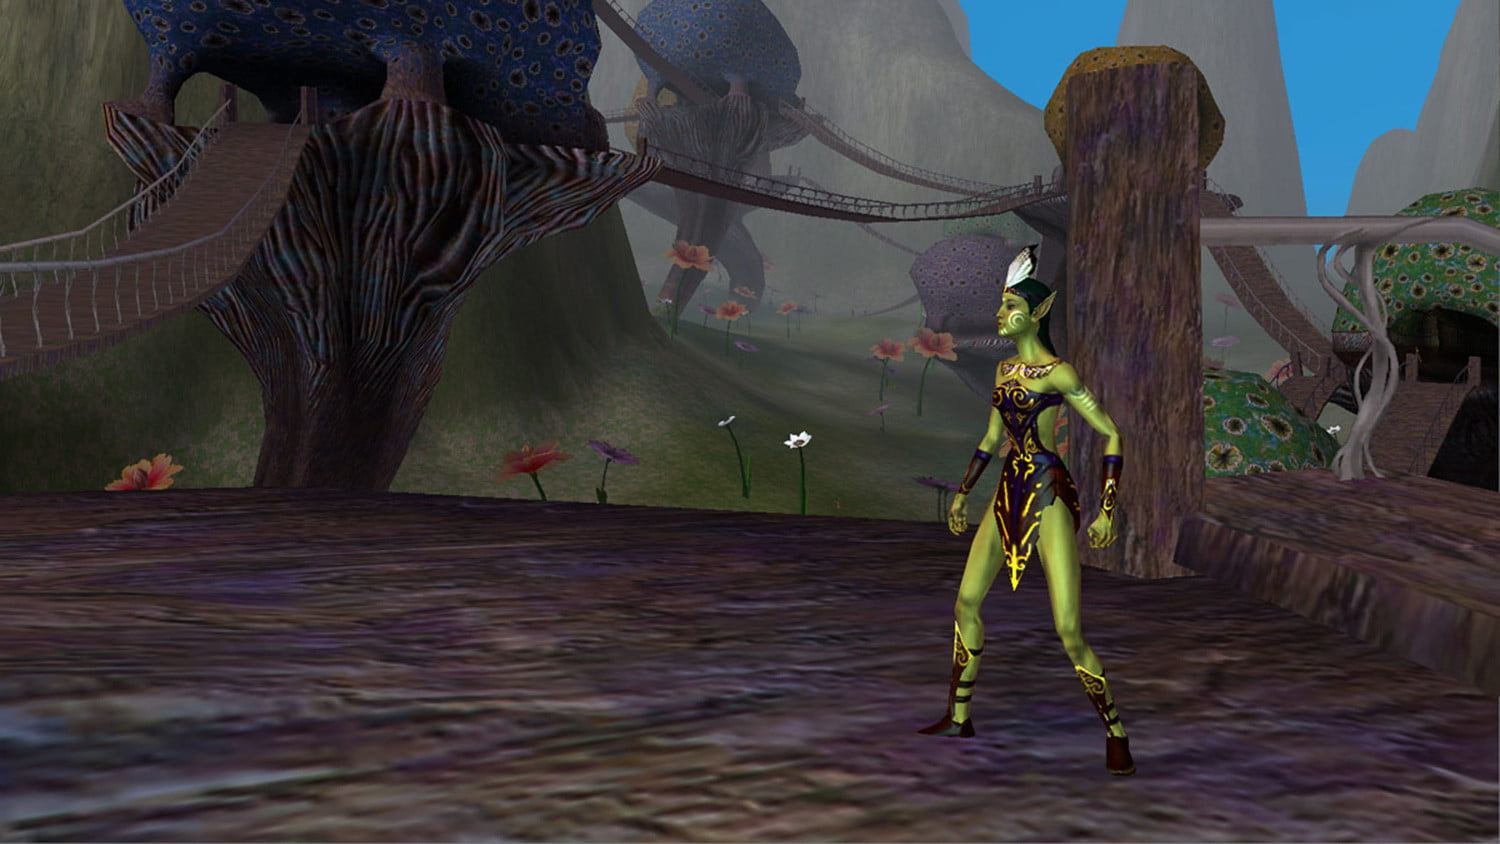 life lessons my dad taught me through everquest screenshots 02